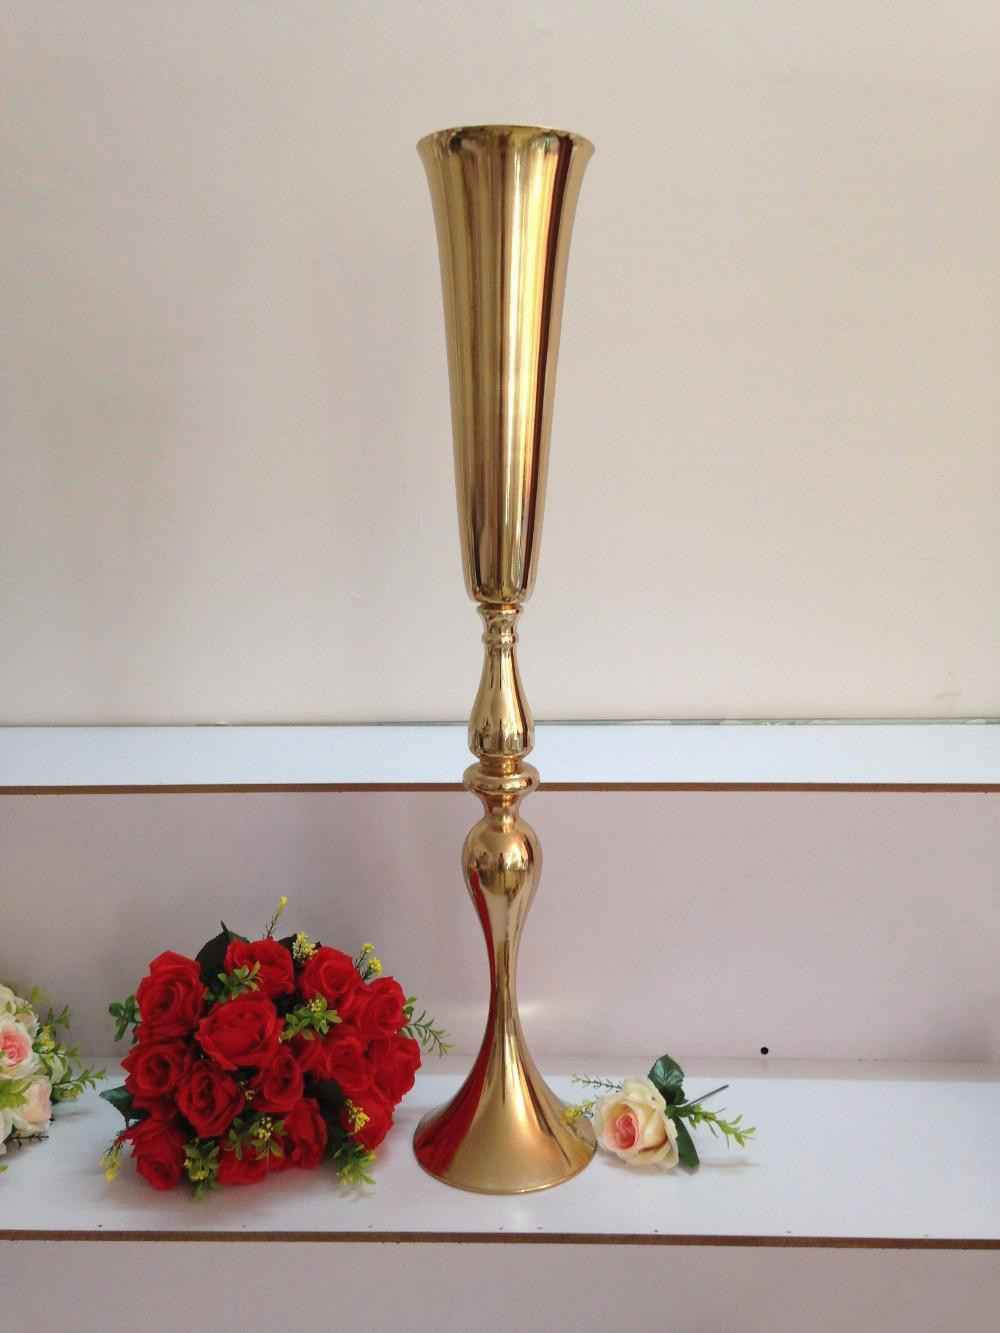 marquis by waterford vase of gold tall vases gallery dsc7285h vases gold pedestal vase glass 4 8 regarding gold tall vases photos faux crystal candle holders alive vases gold tall jpgi 0d cheap in